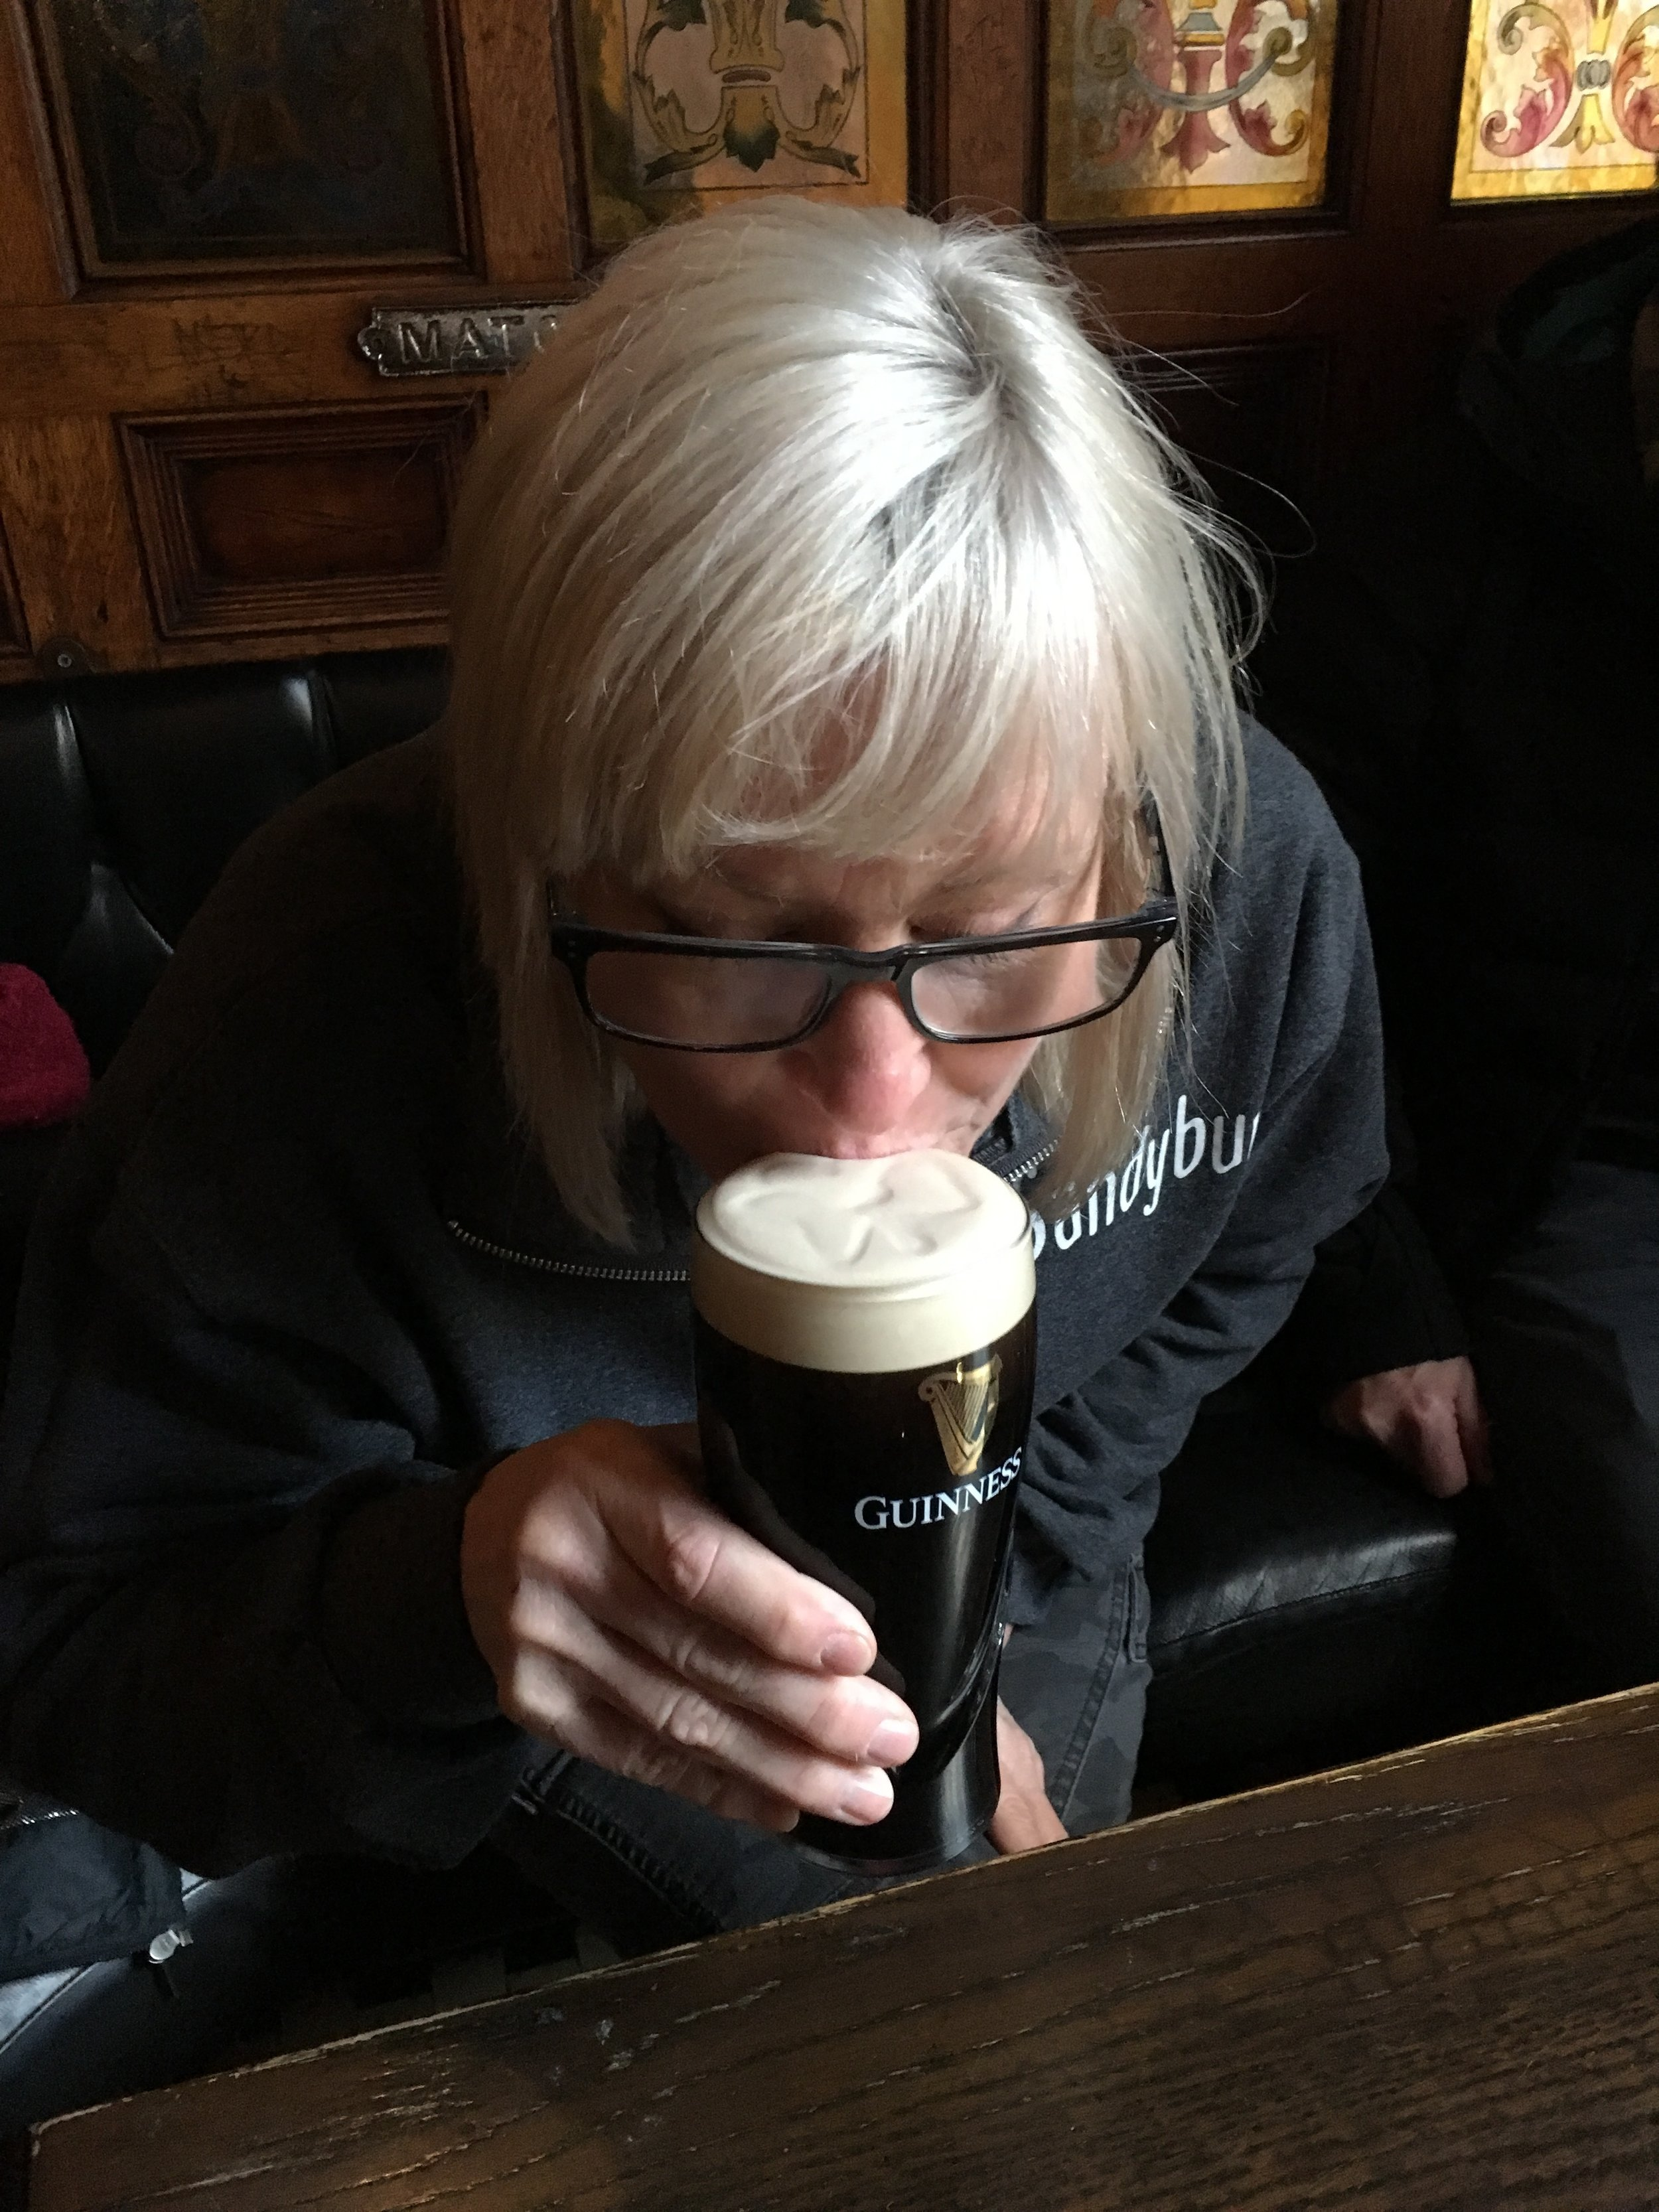 """A proper pint at the Crown Bar in Belfast. I learned to not order a """"black and tan"""" in Northern Ireland unless you want to get yelled at by the bartender to go """" google that term! We don't serve that here!"""" I guess ordering an Irish Car Bomb might have gotten me kicked out altogether!"""